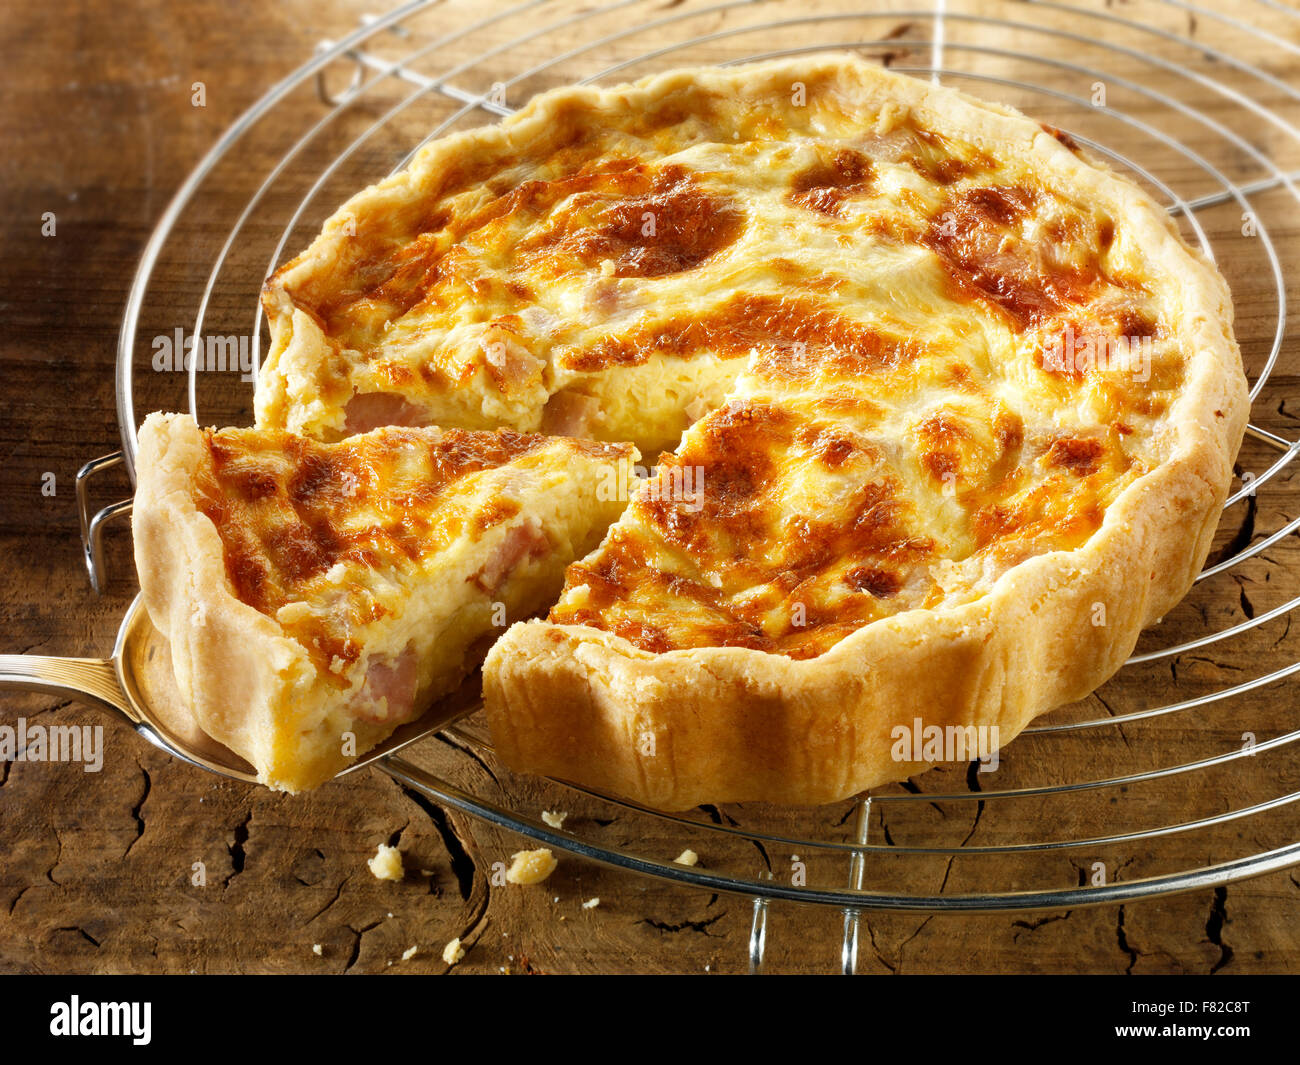 Whole quiche Loraine in a lunch time setting with a cut slice - Stock Image